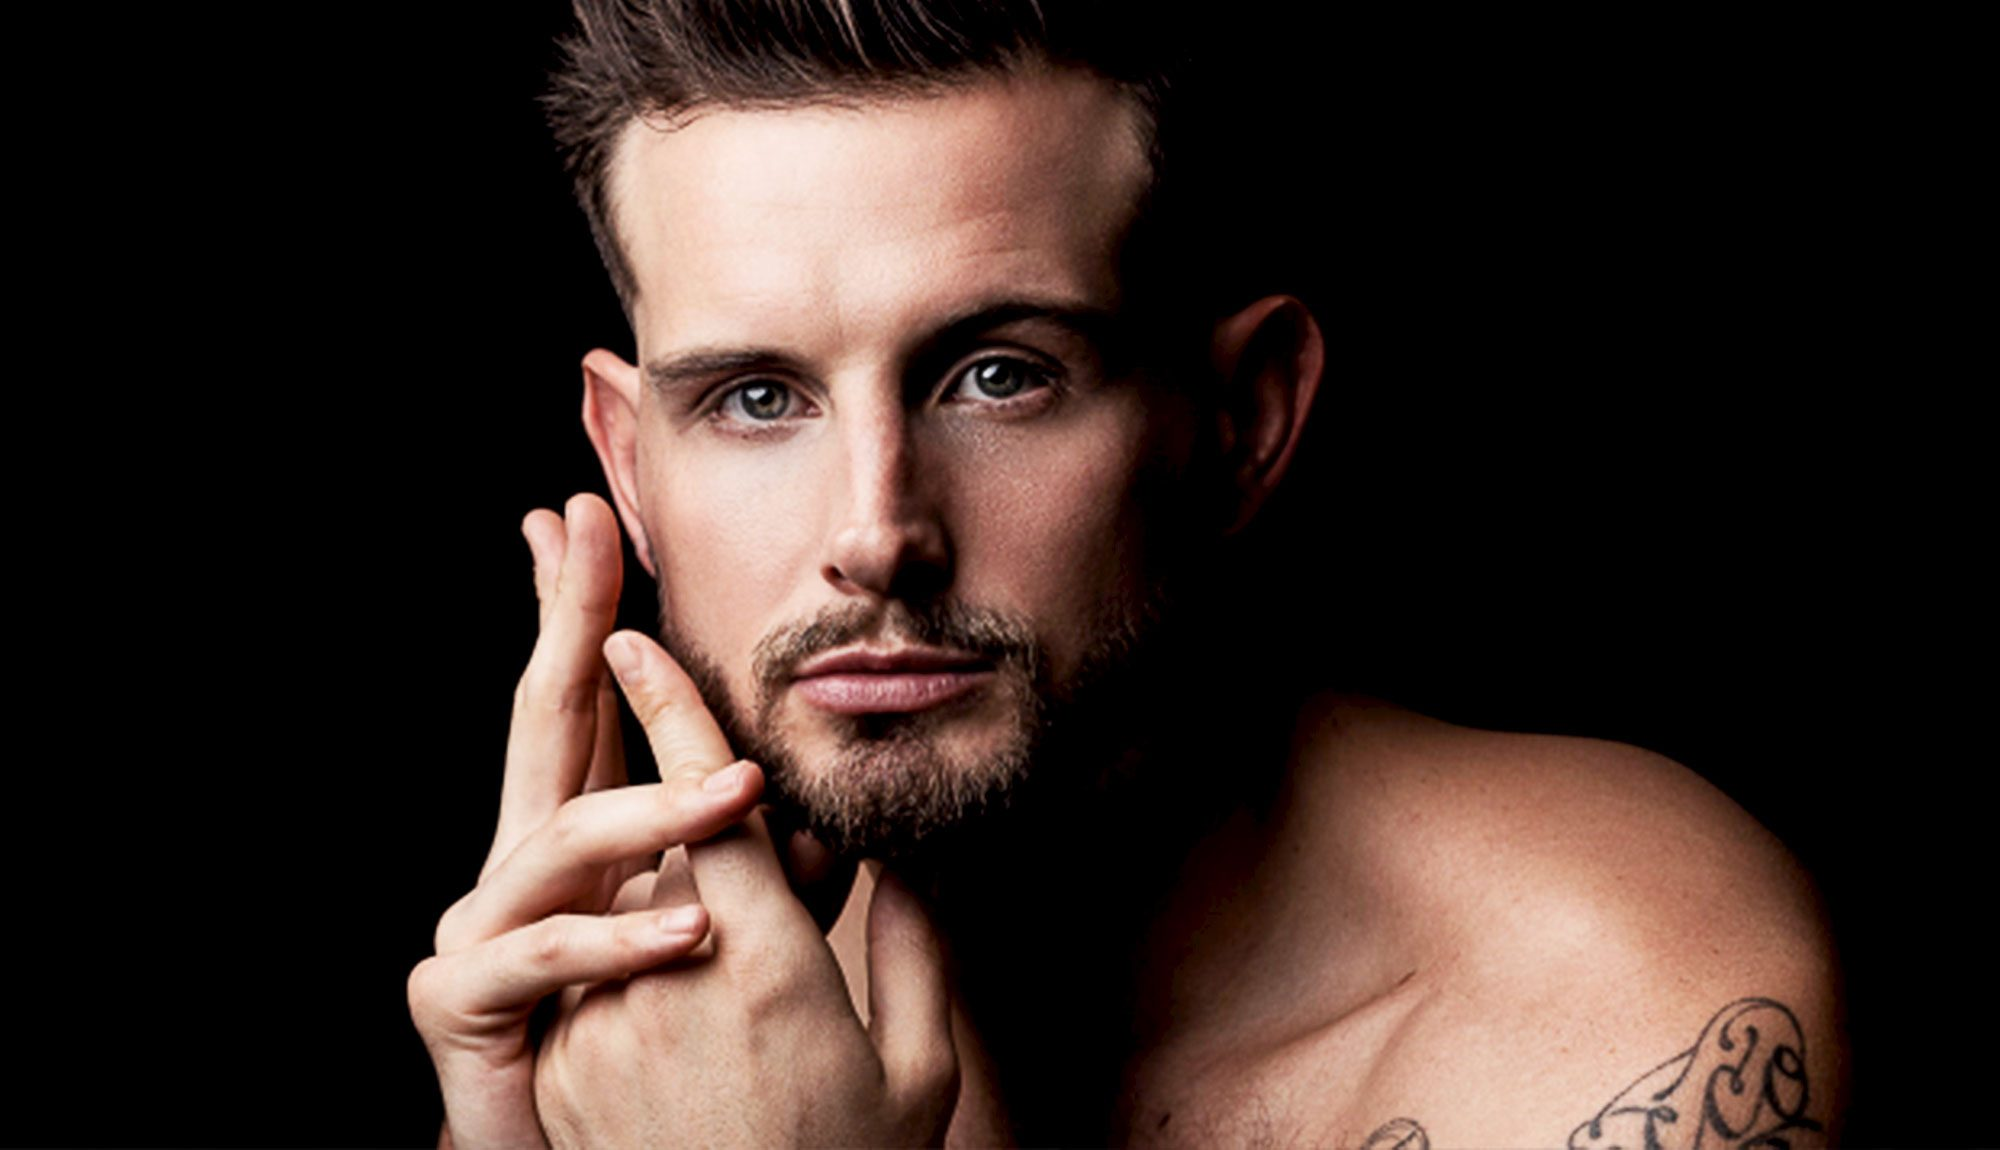 Nico Tortorella Cast As Lead Of New Walking Dead Spin-Off